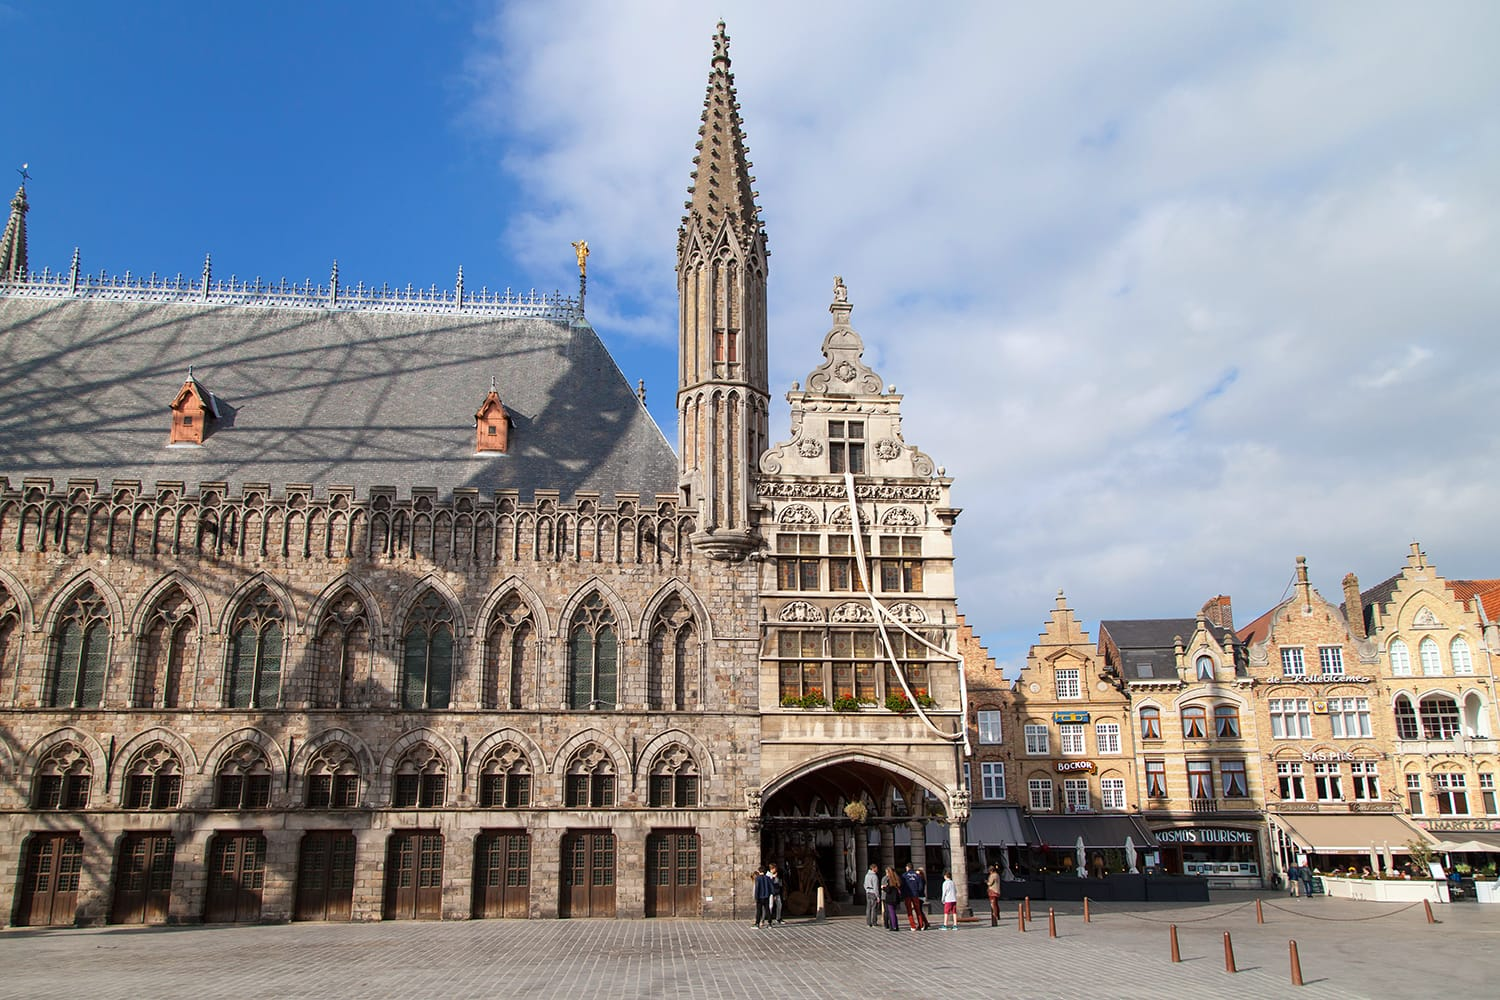 Grote Markt of Ypres, Belgium, with part of the Cloth Hall building on the left and the renaissance building Nieuwerck on the center